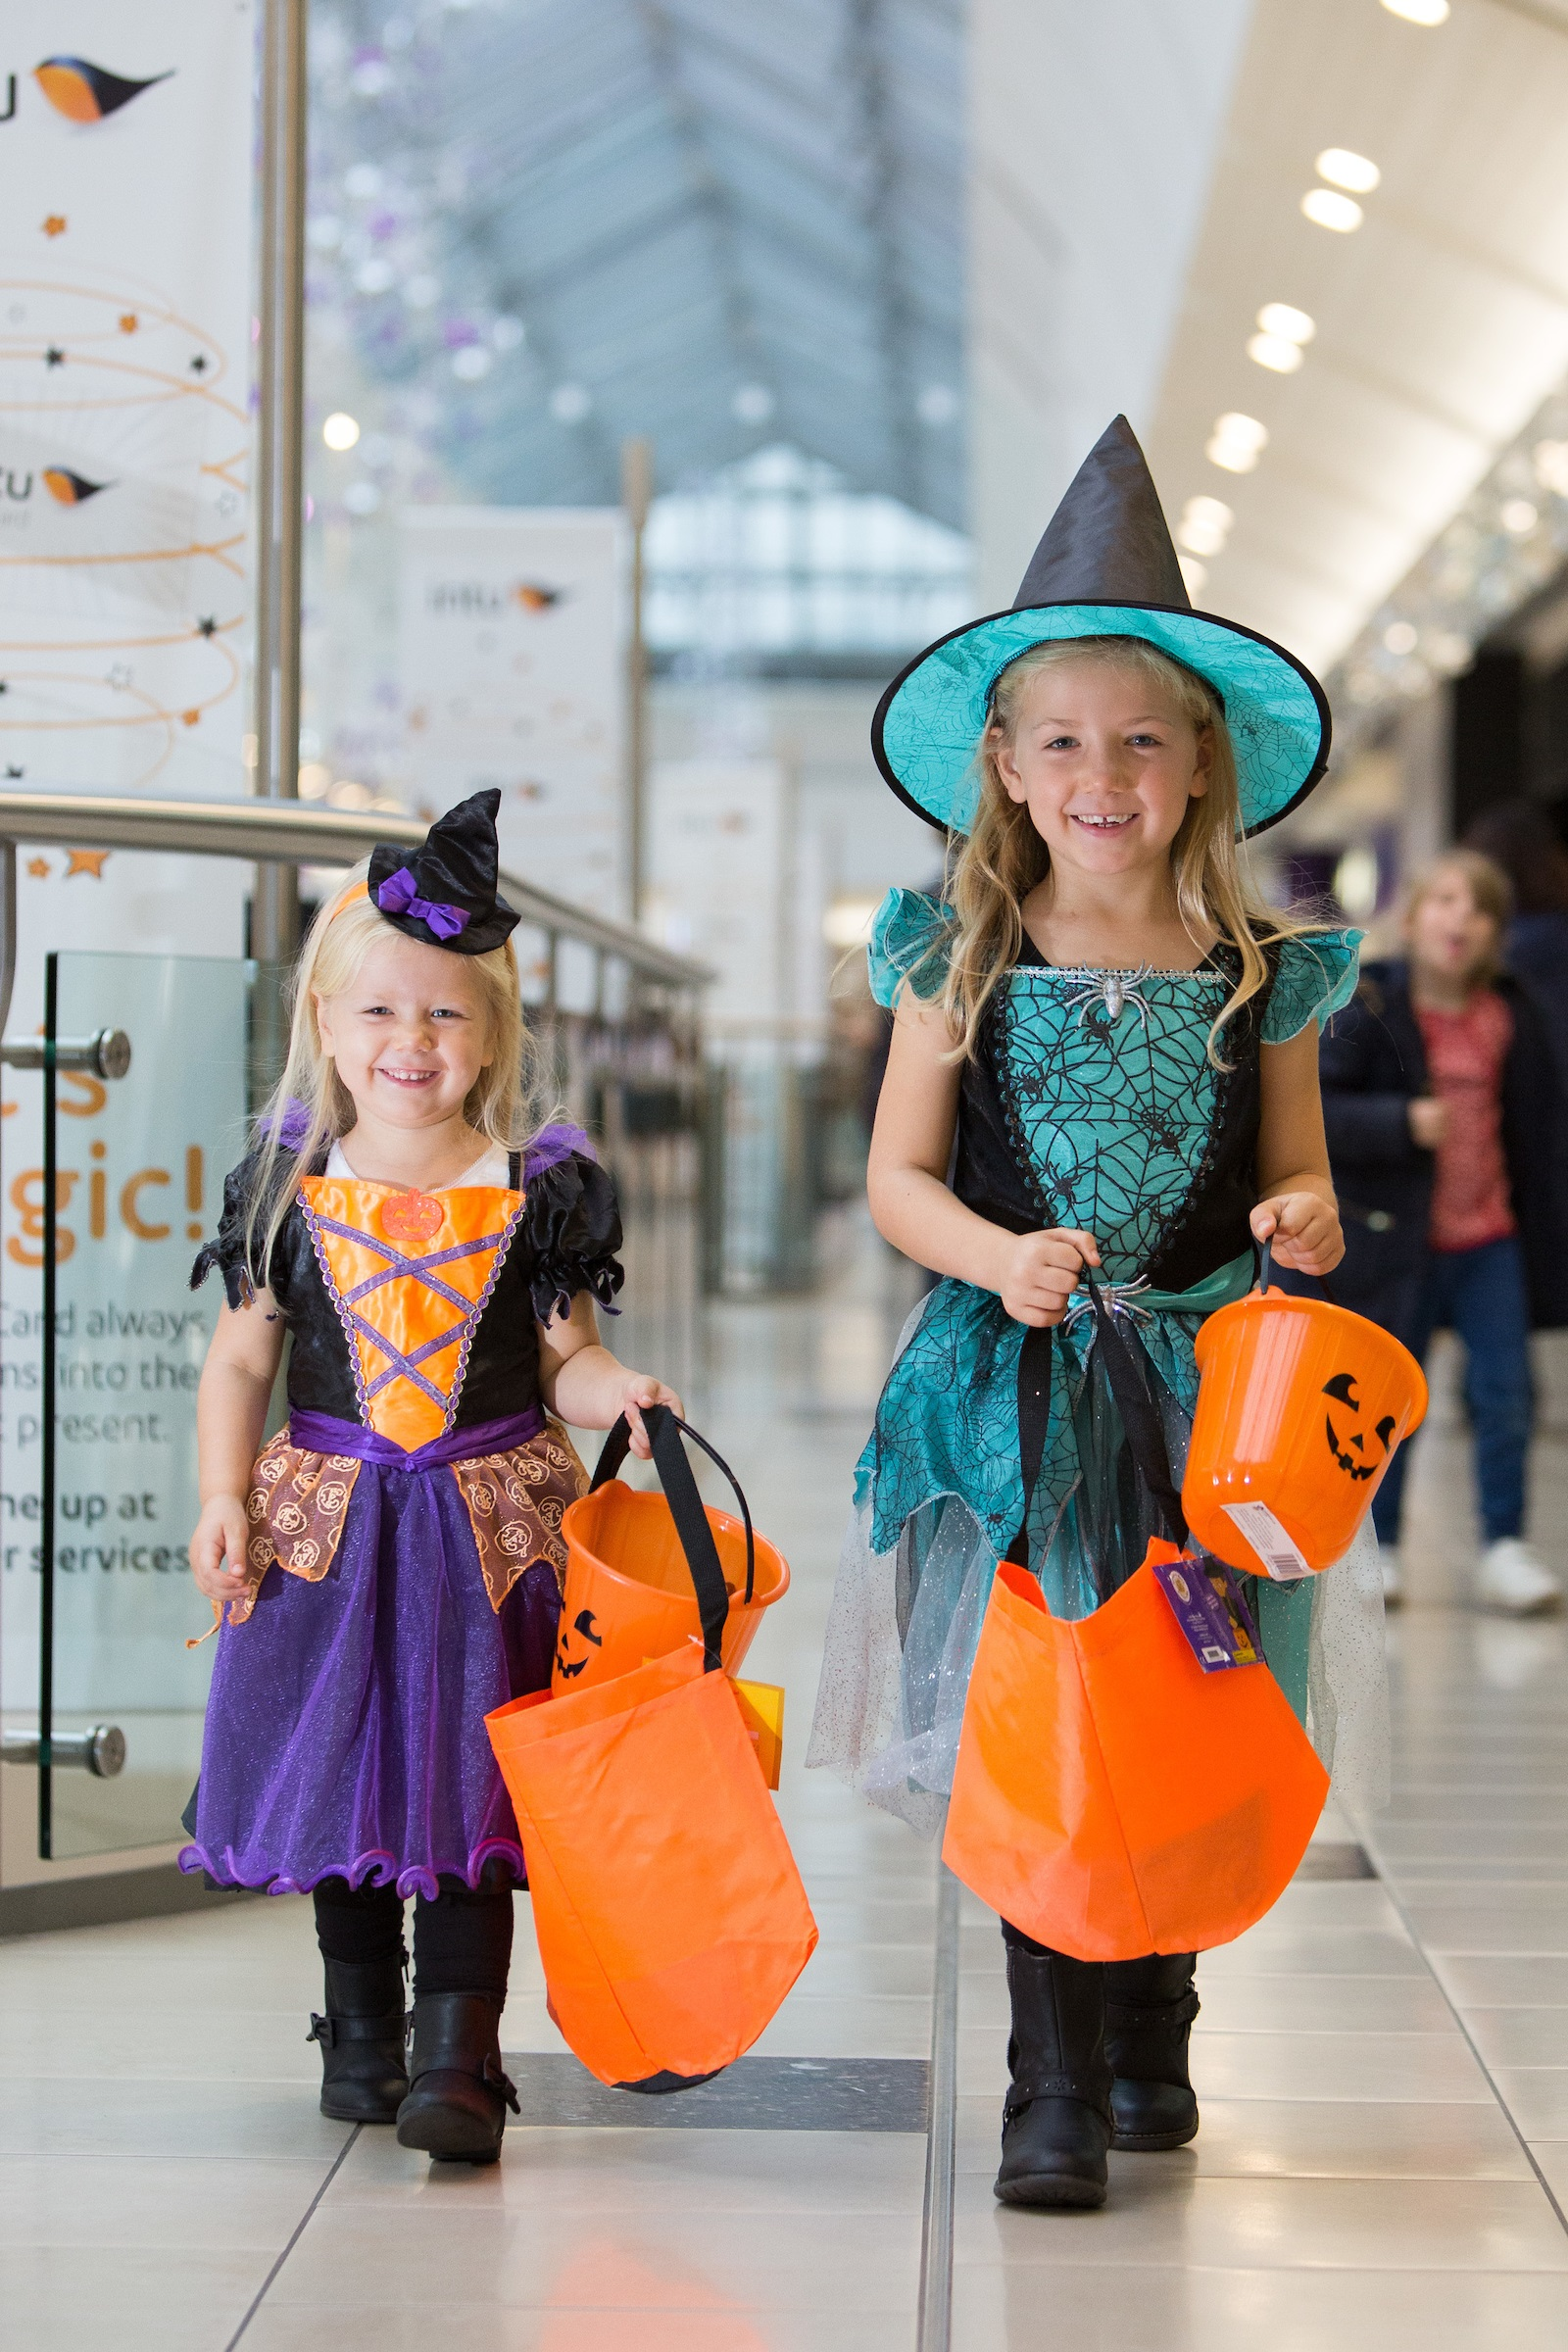 Eva (3) & Georgia (6) Caulfield taking part in the big trick or treat event at intu Lakeside